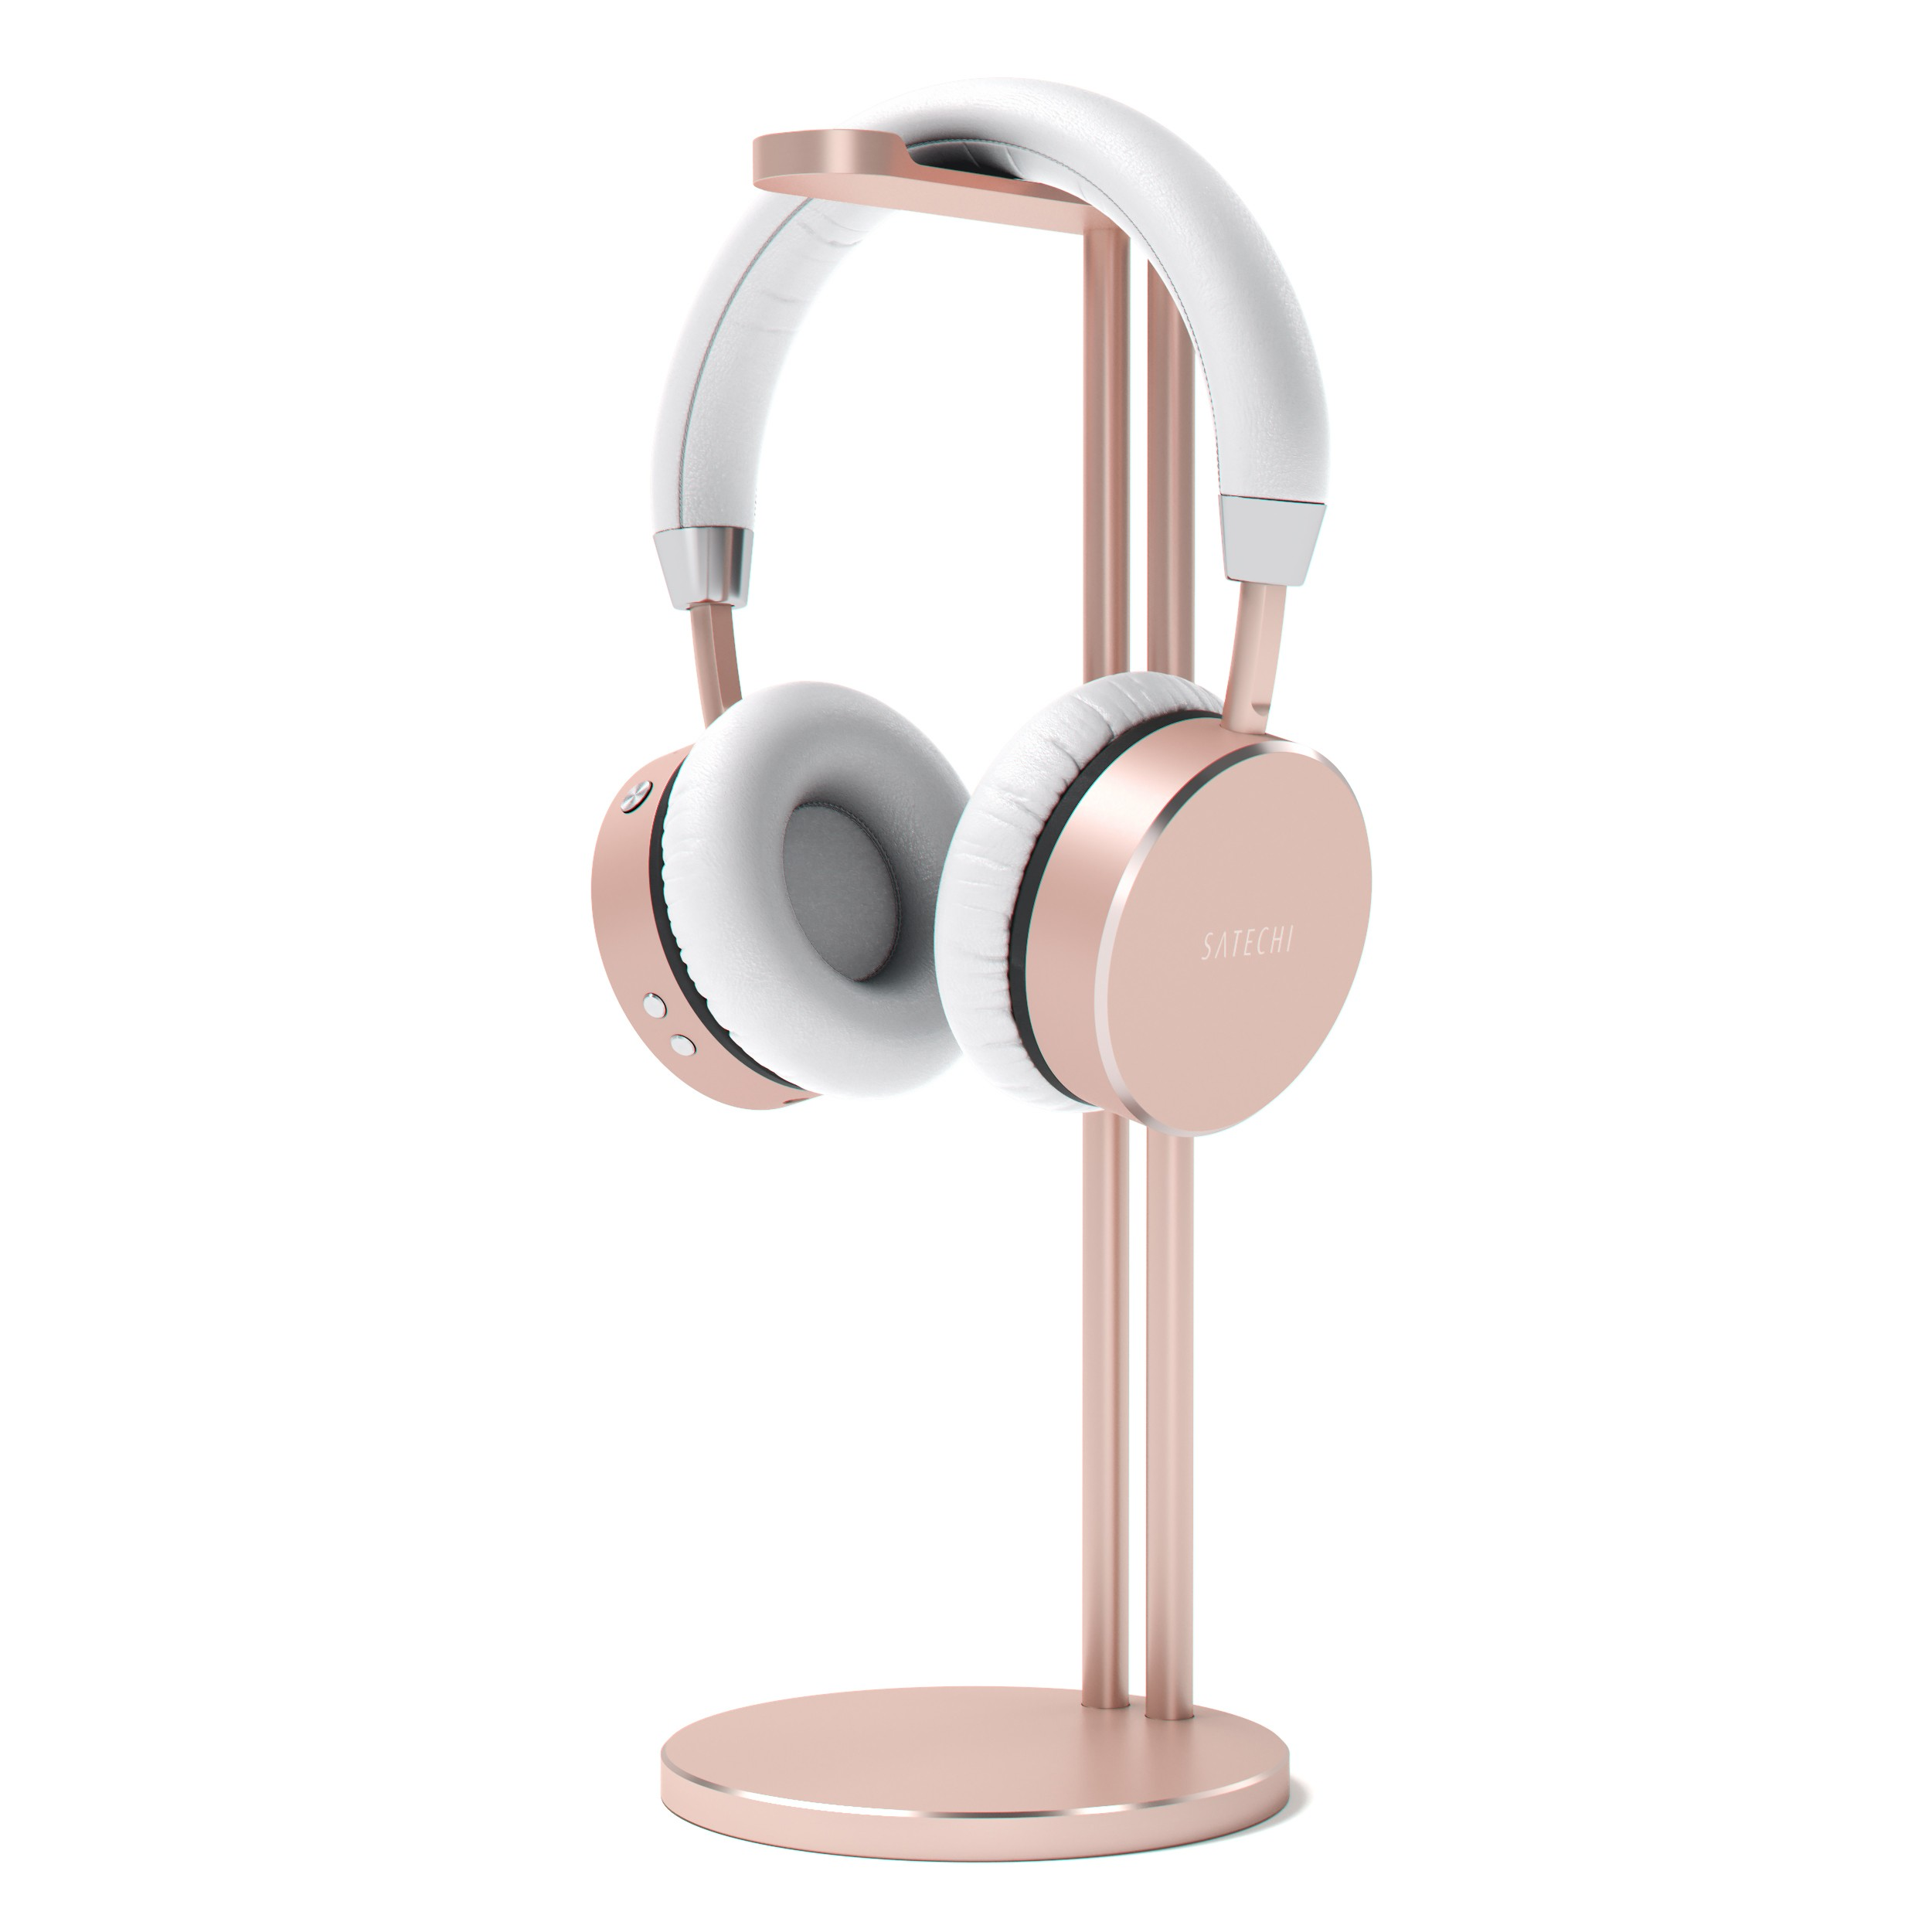 Buy beats by dr dre solo 3 wireless bluetooth headphones rose gold - Rose Gold Headphones Www Galleryhip Com The Hippest Pics